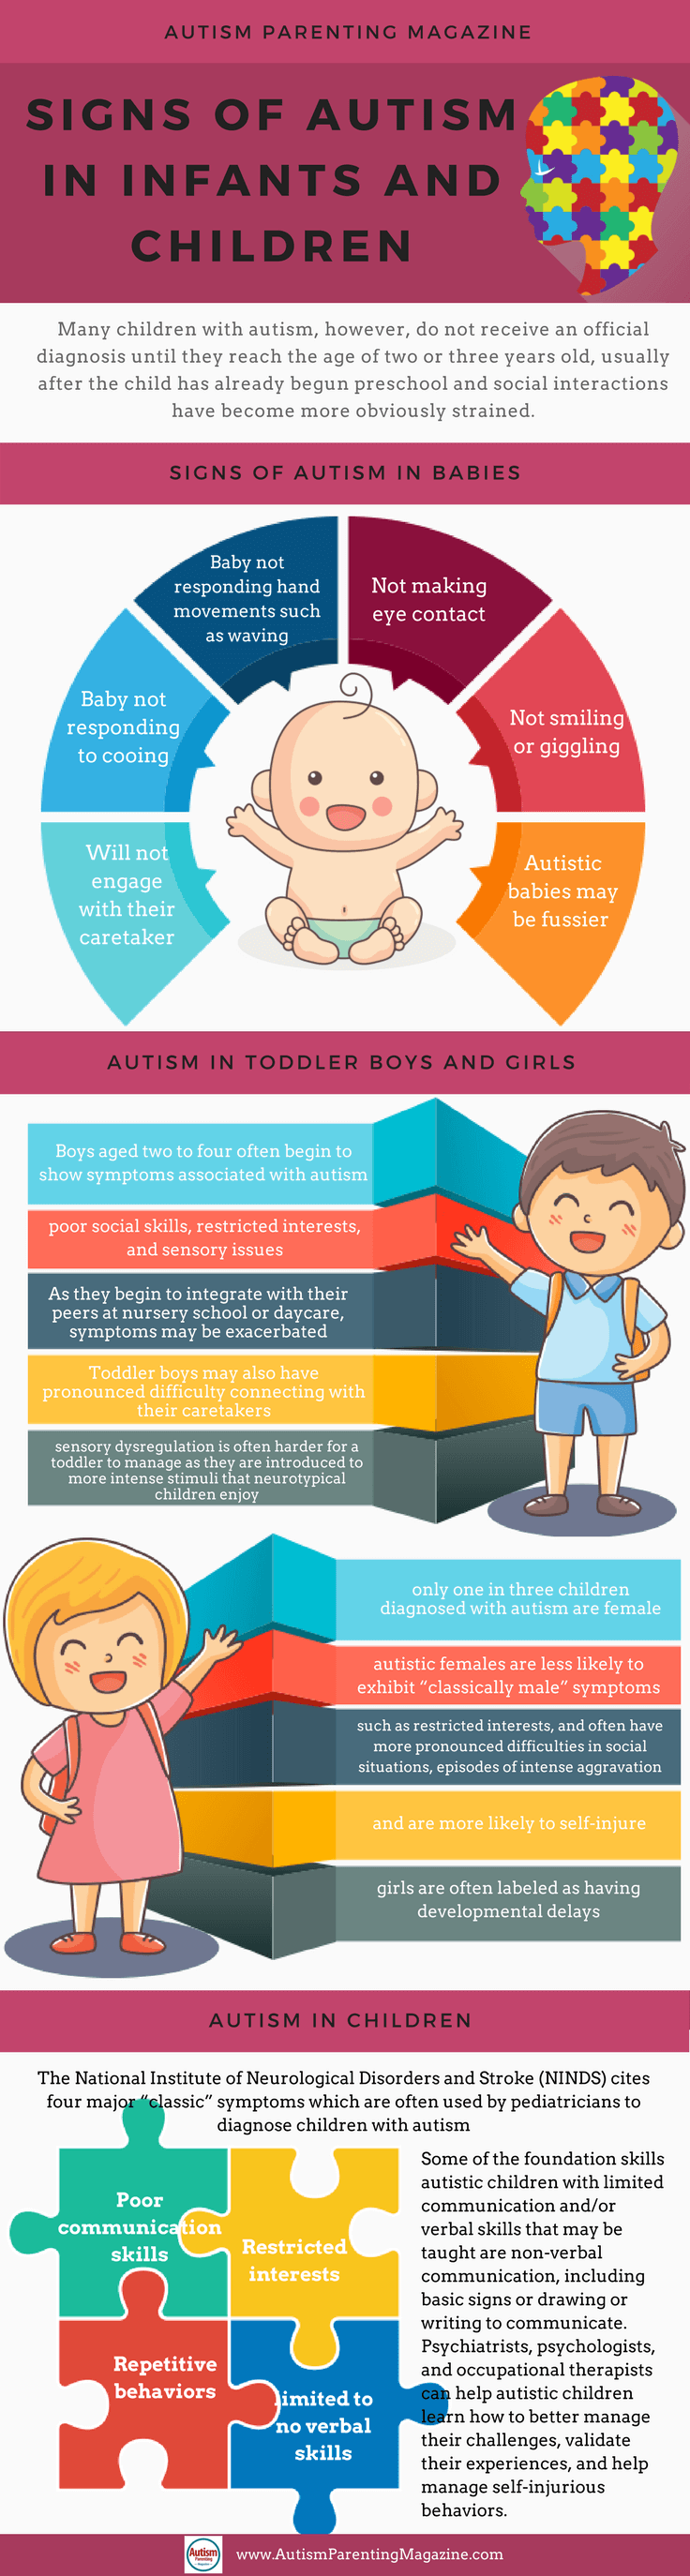 Signs of Autism in Infants and Children Autism Parenting Magazine